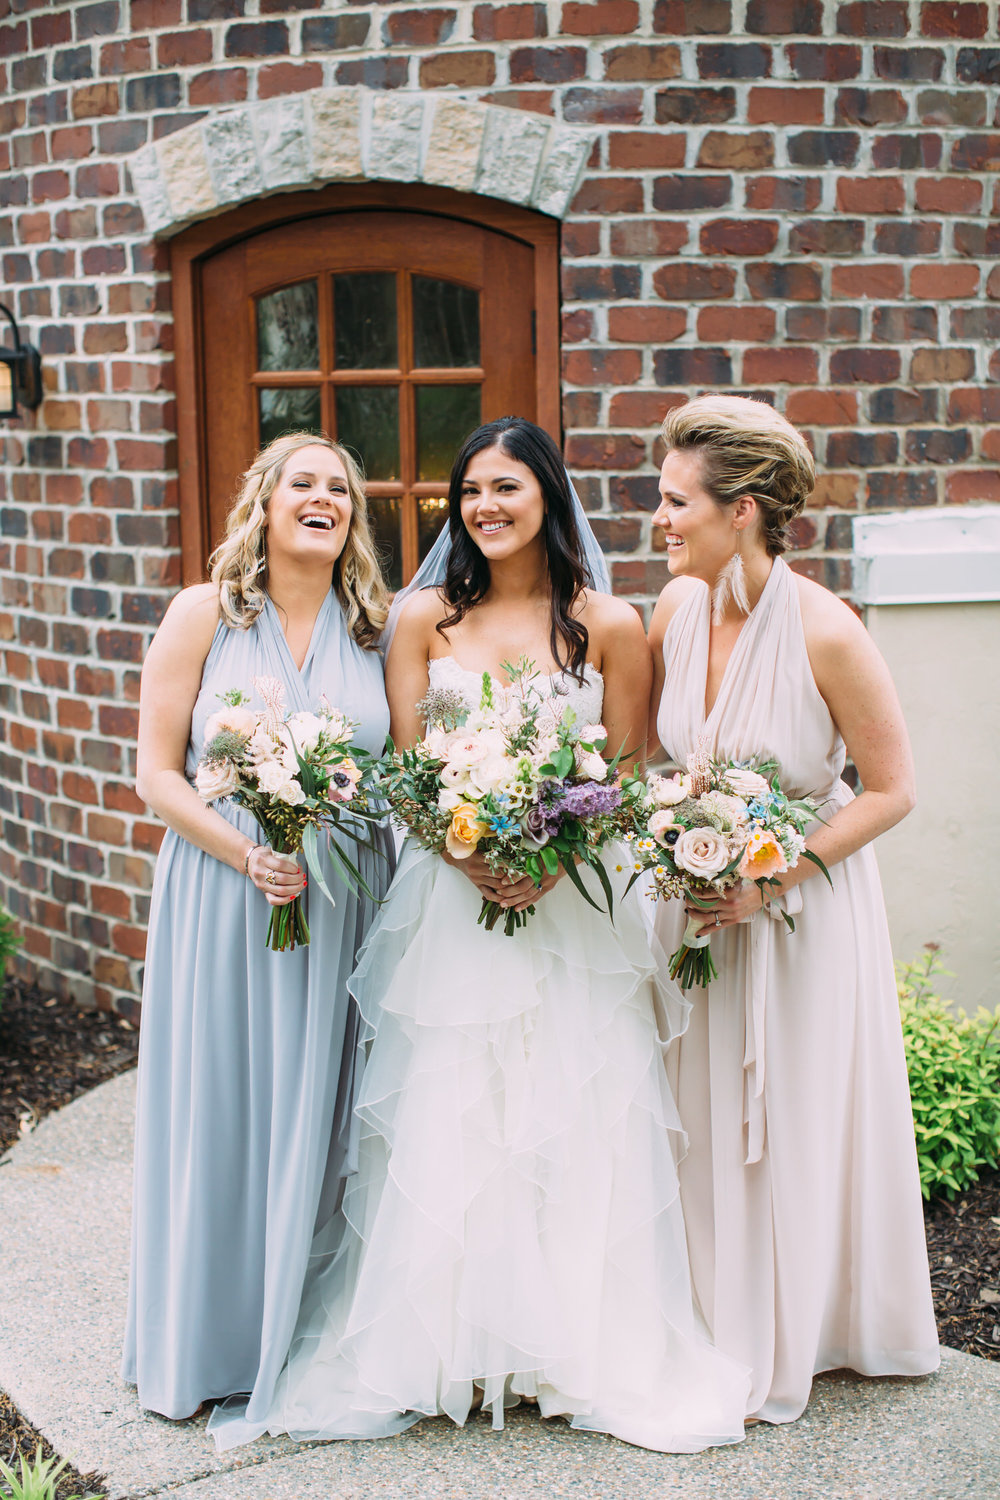 Bride and bridesmaids, denver wedding photographer